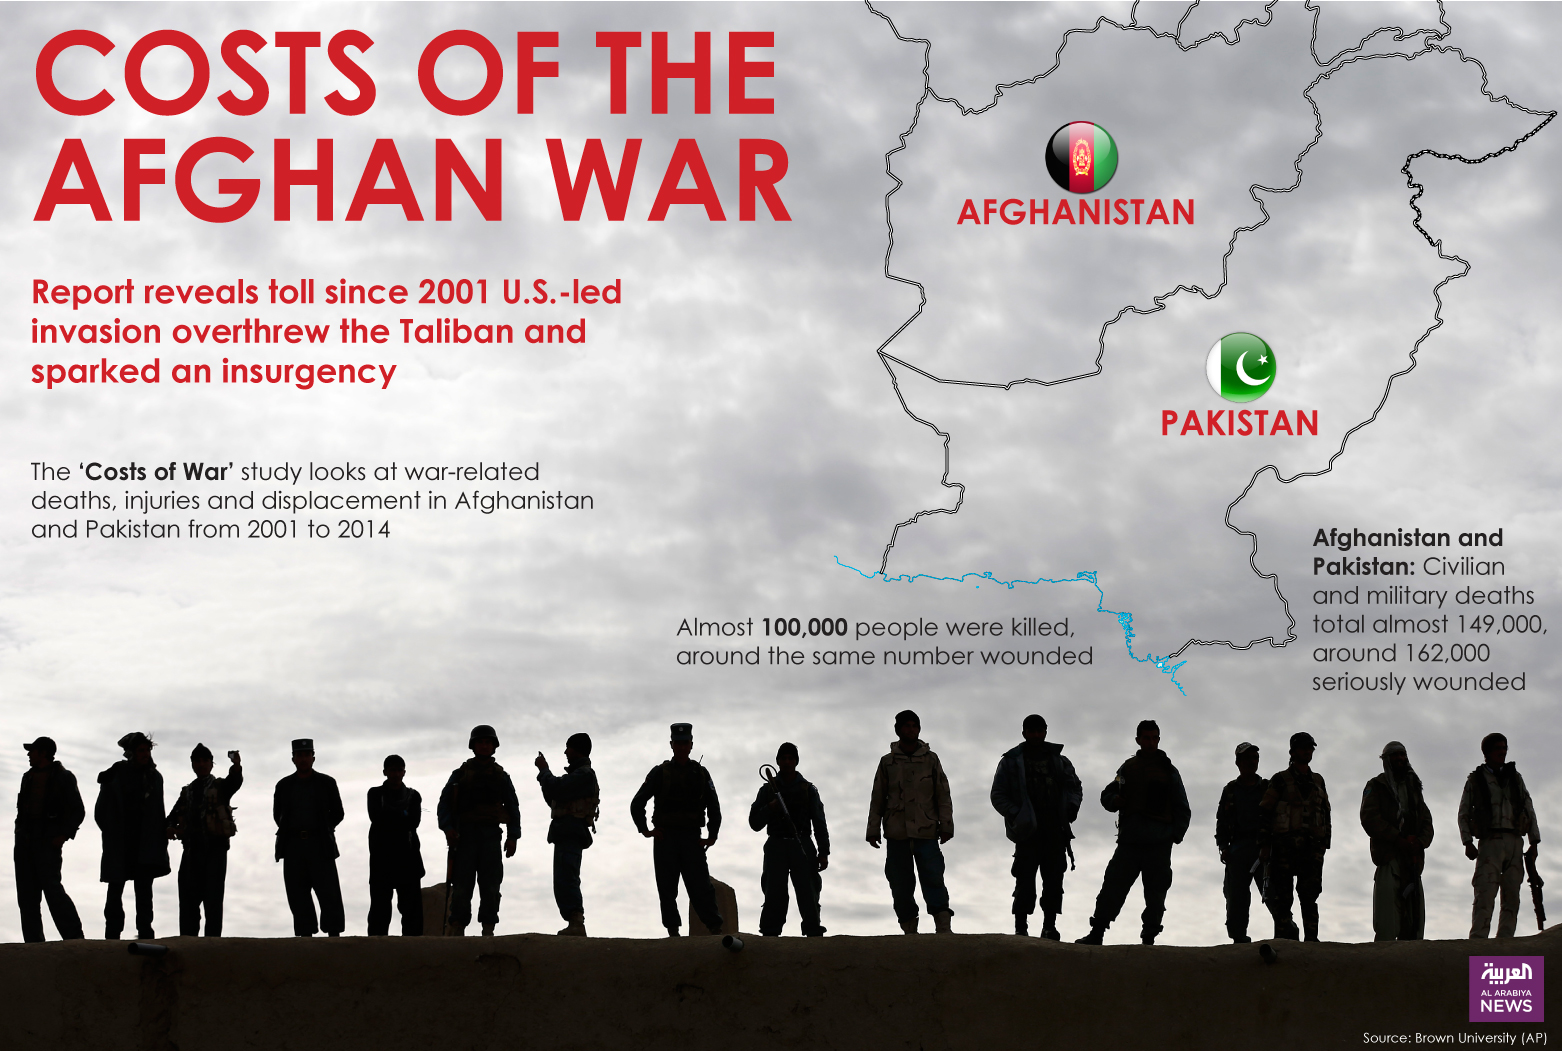 Cost of Afgan War